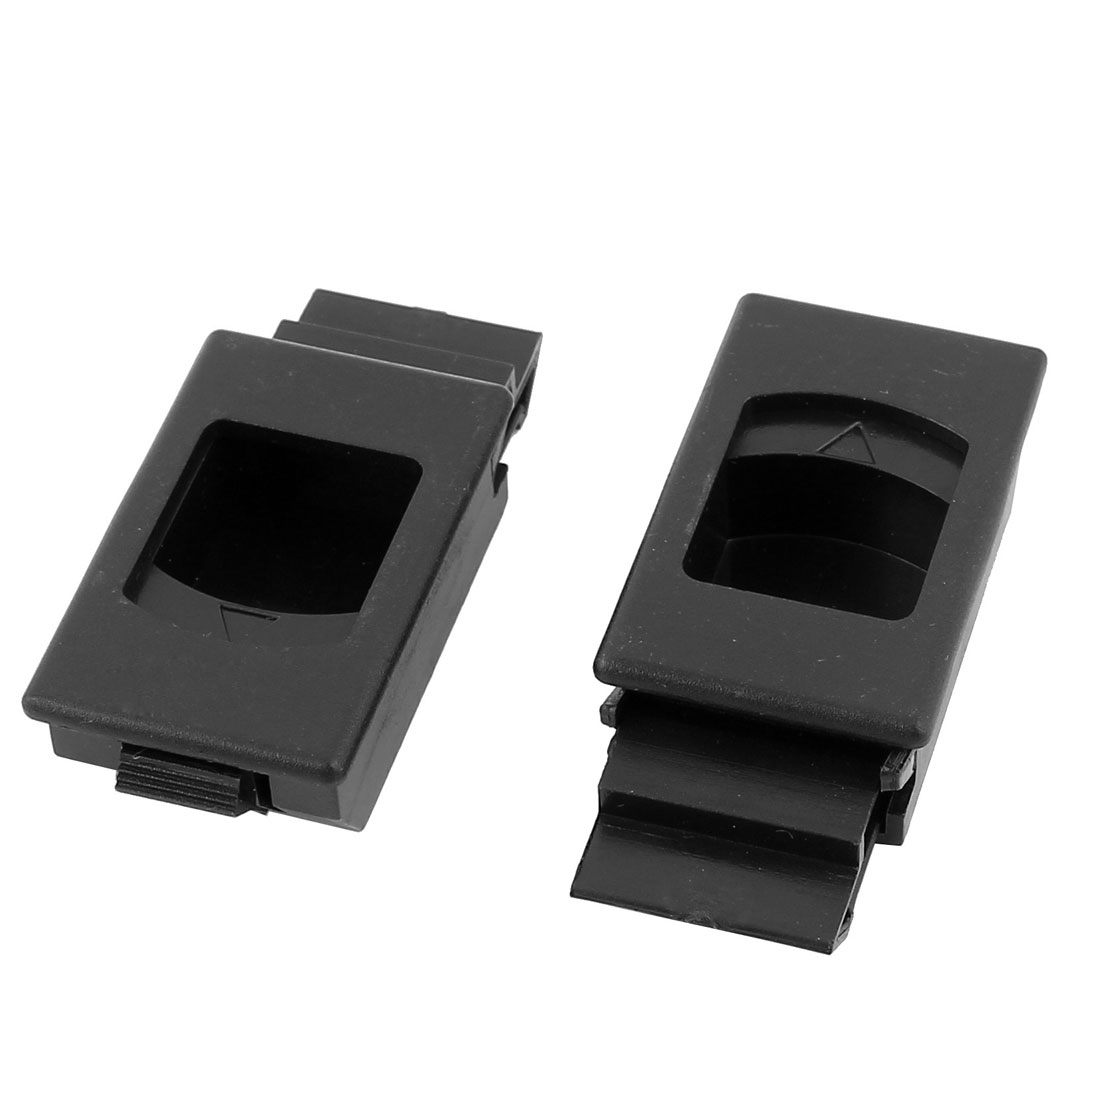 Black Plastic Window Door Cabinet Inside Sliding Pull Latch Fittings 2pcs